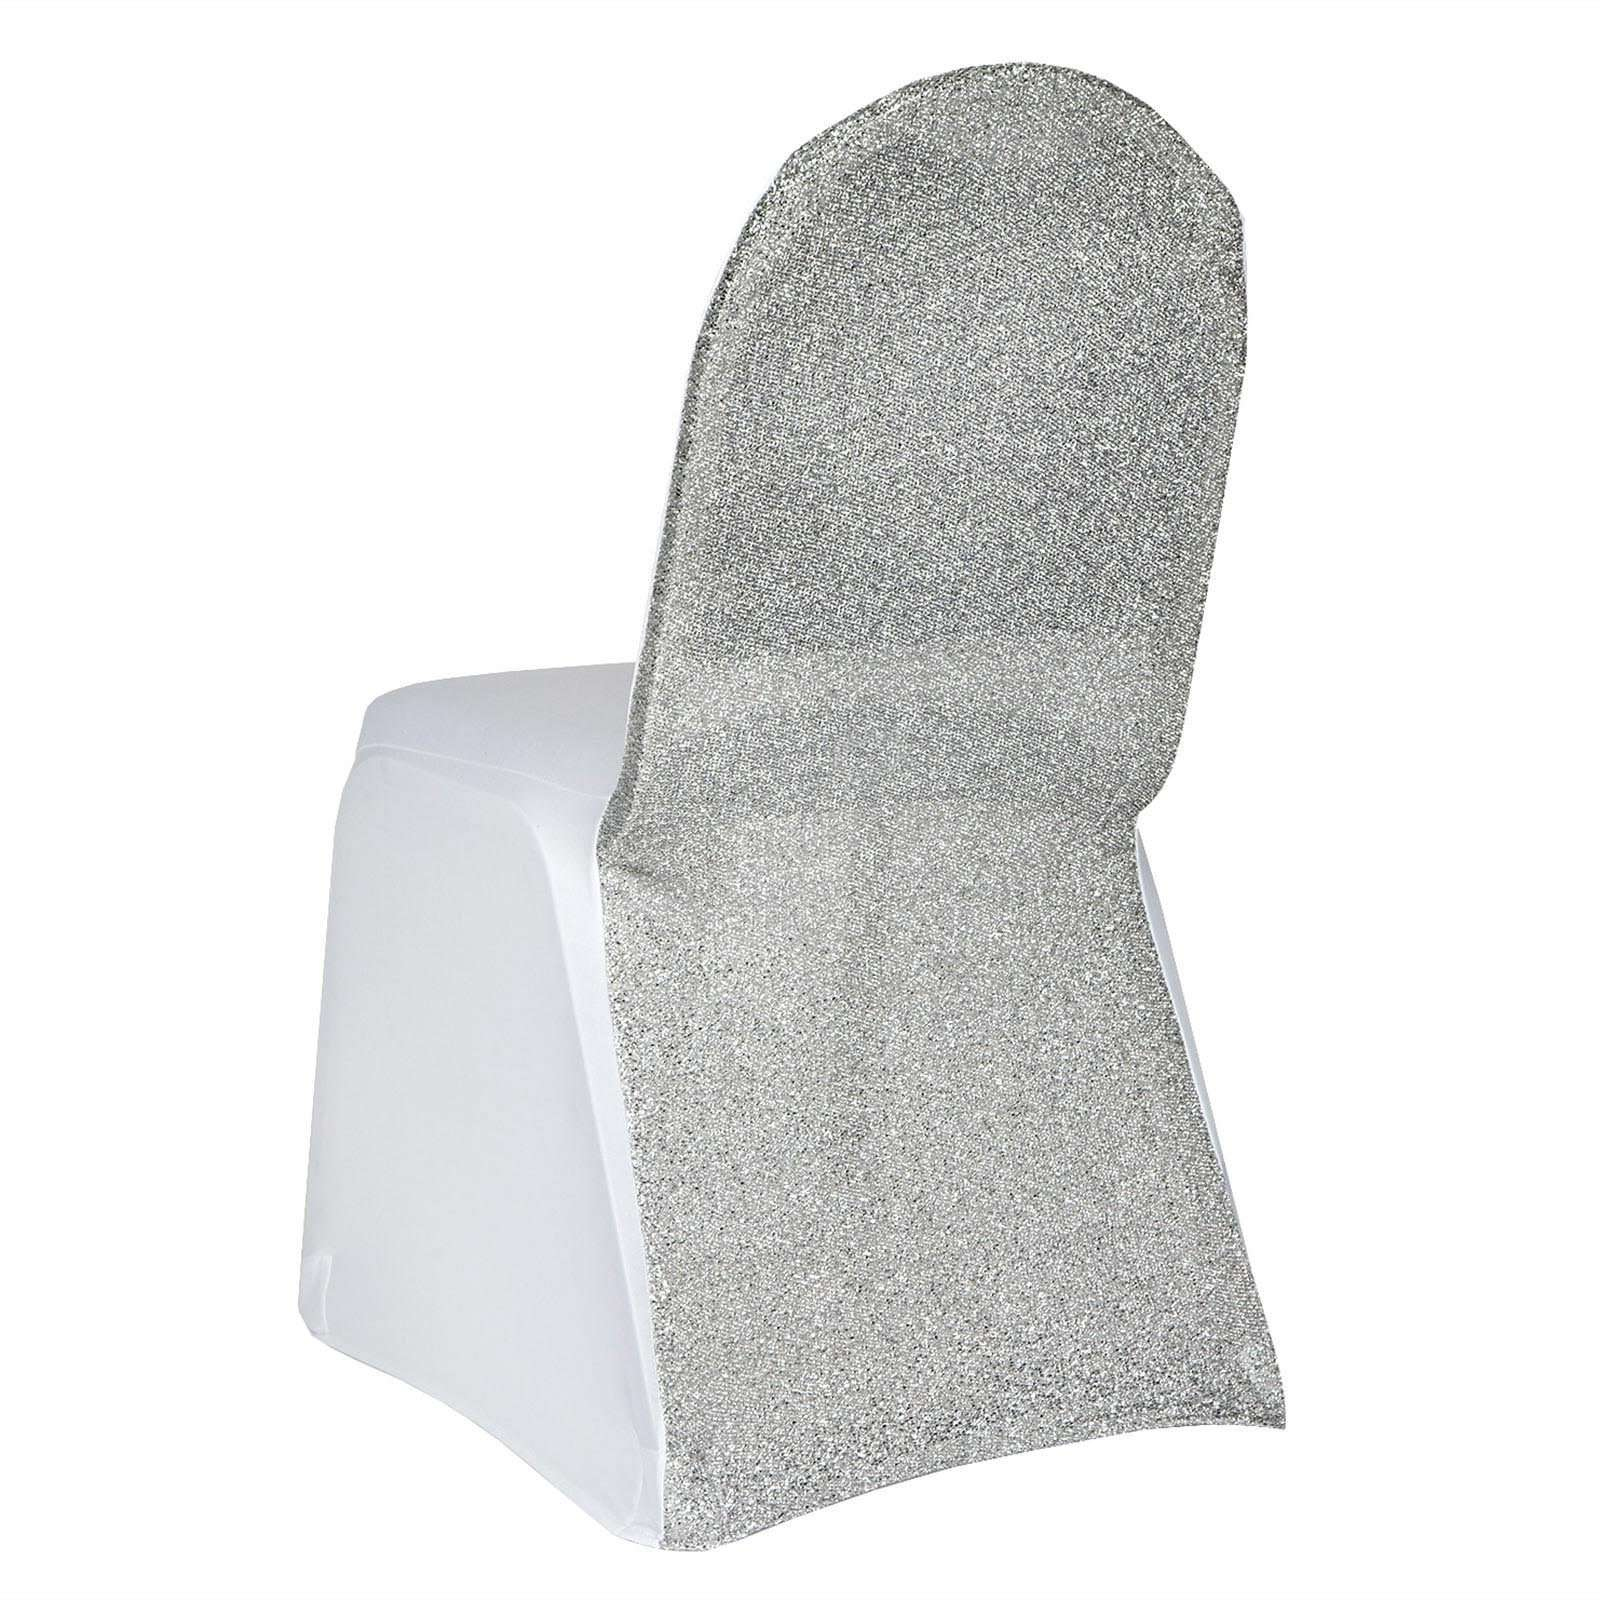 Peachy White Spandex Stretch Banquet Chair Cover With Silver Beatyapartments Chair Design Images Beatyapartmentscom